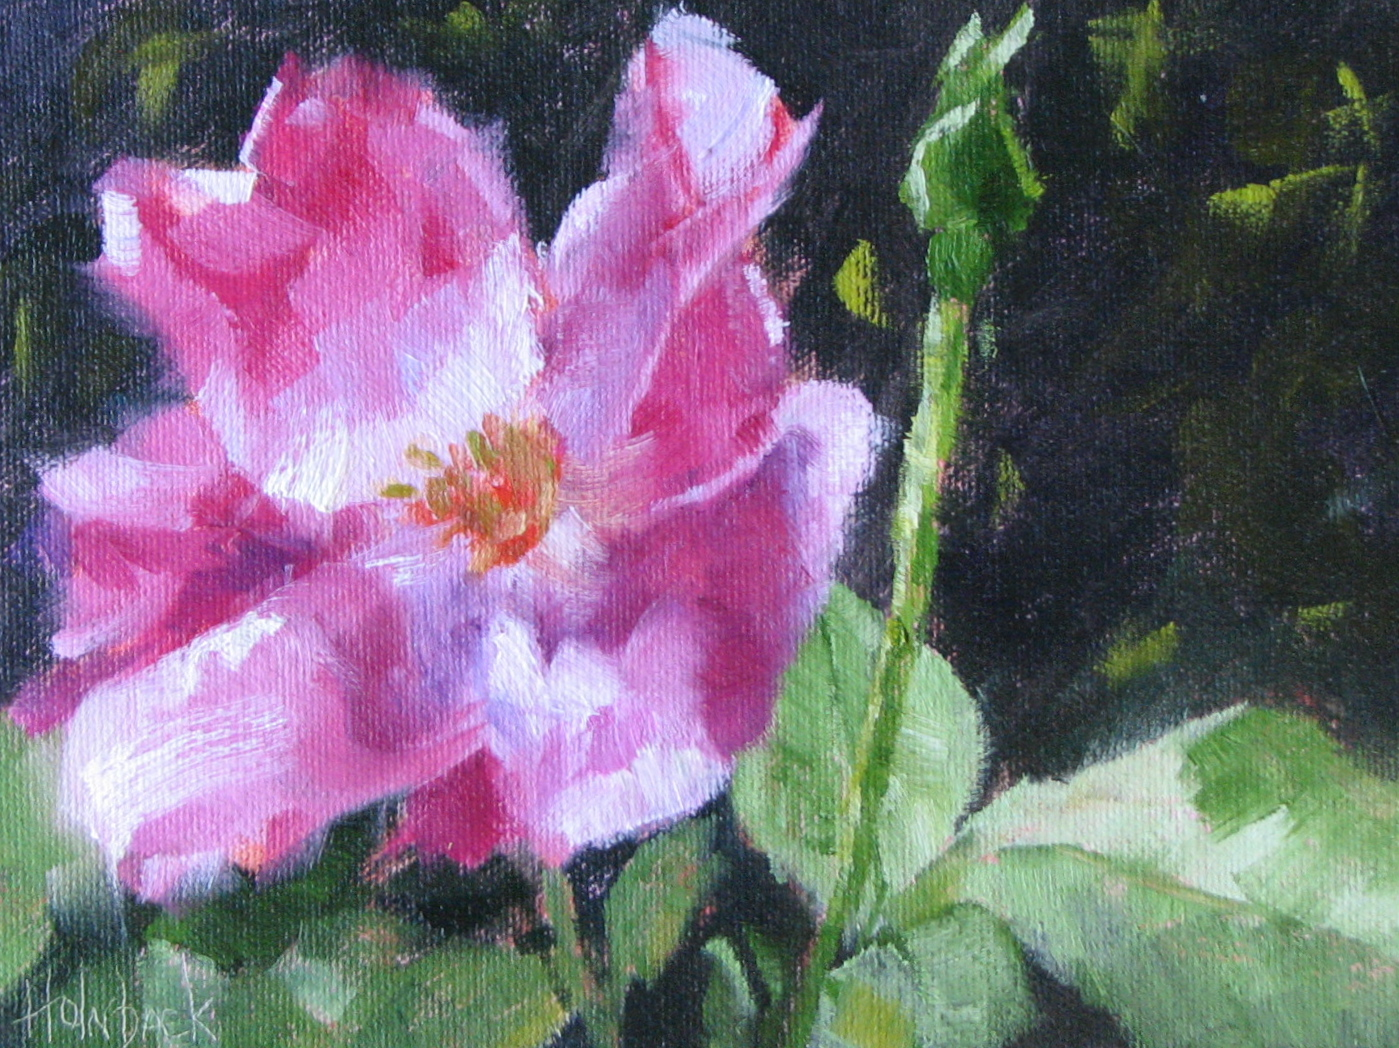 """100 Garden & Floral Oil Paintings, Original Artwork by Pam Holnback, 67/100"" original fine art by Pam Holnback"